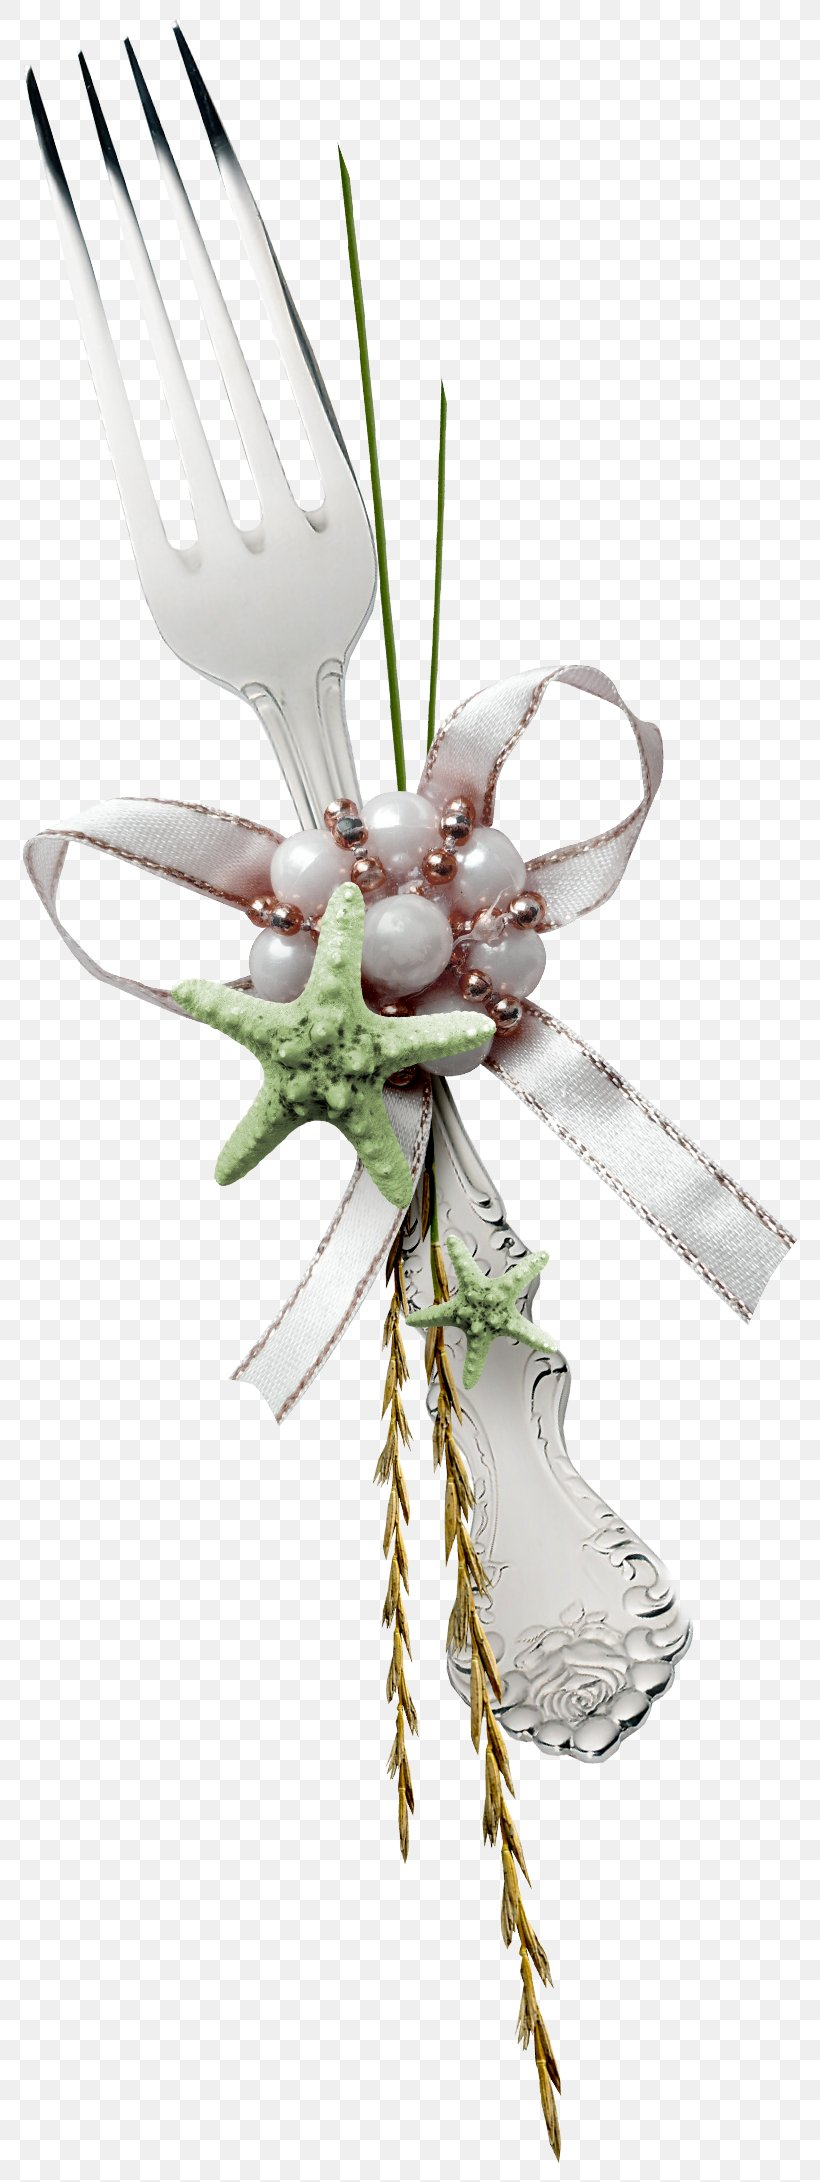 With Ribbon Telescope, PNG, 812x2182px, With Ribbon, Bag, Branch, Floral Design, Flower Download Free